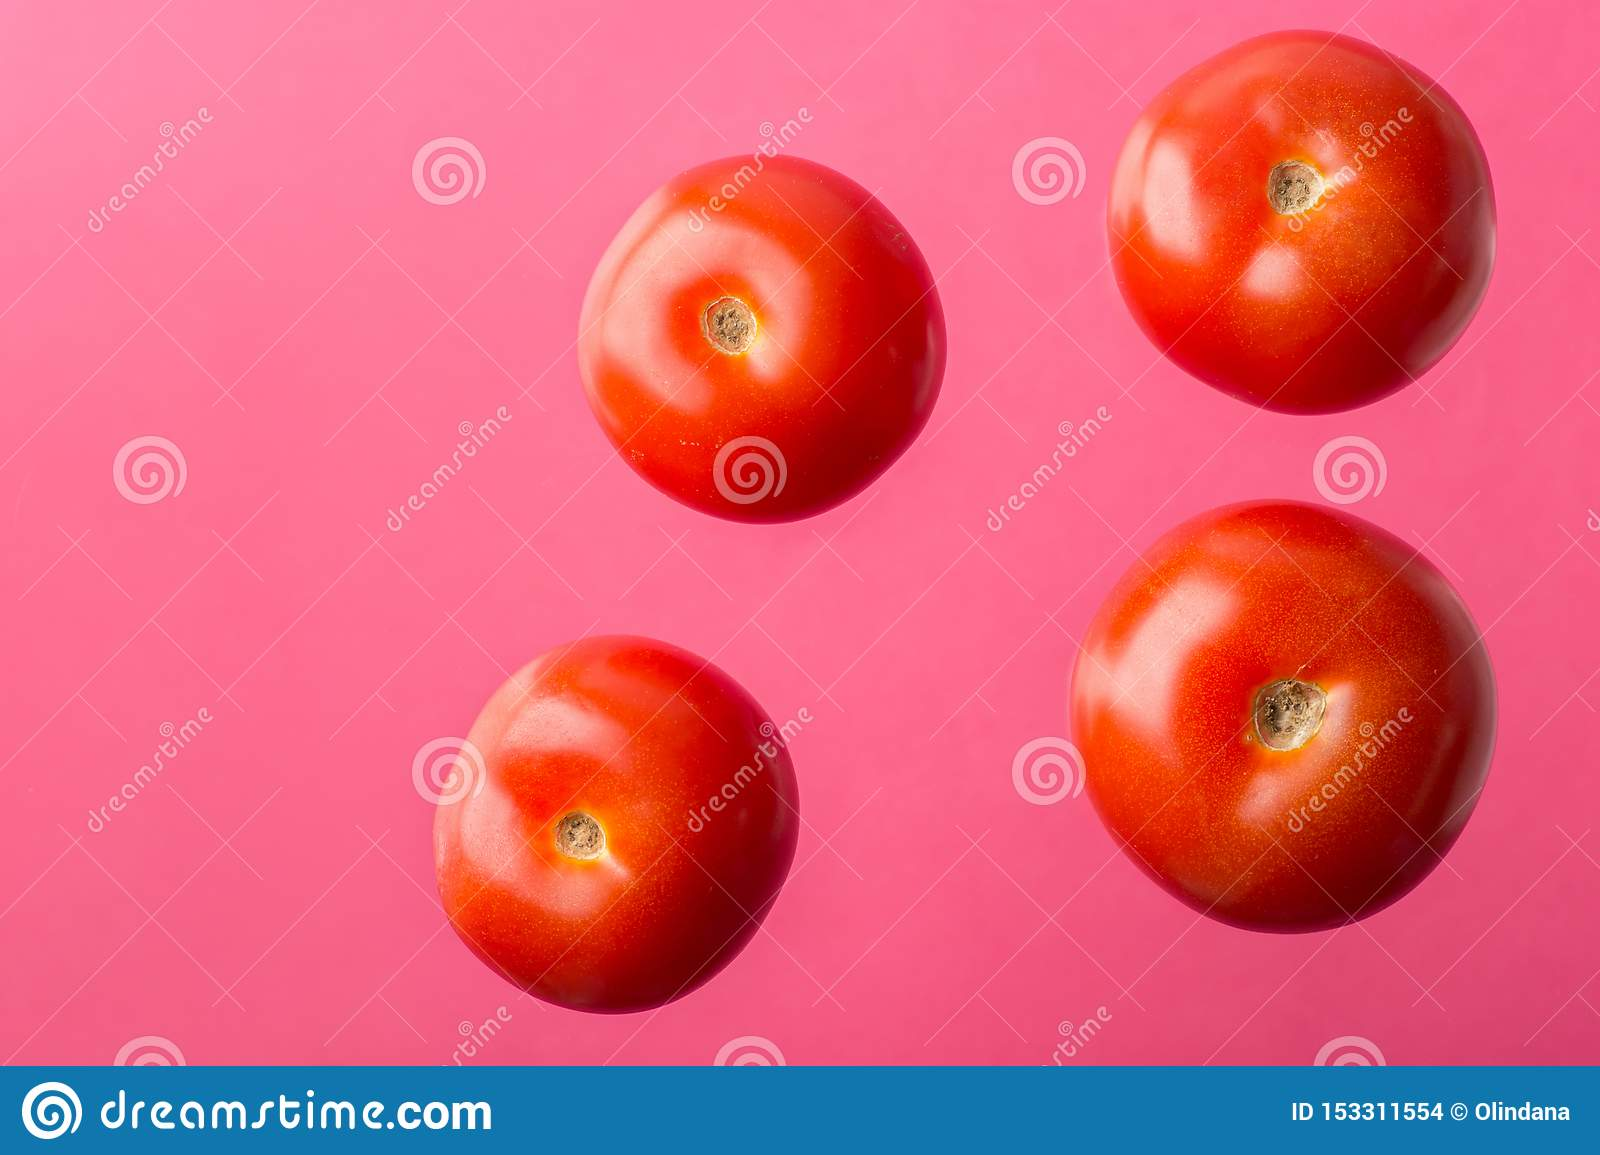 Ripe juicy tomatoes floating levitating in air on pink background. Creative food poster for Mediterranean cuisine healthy diet